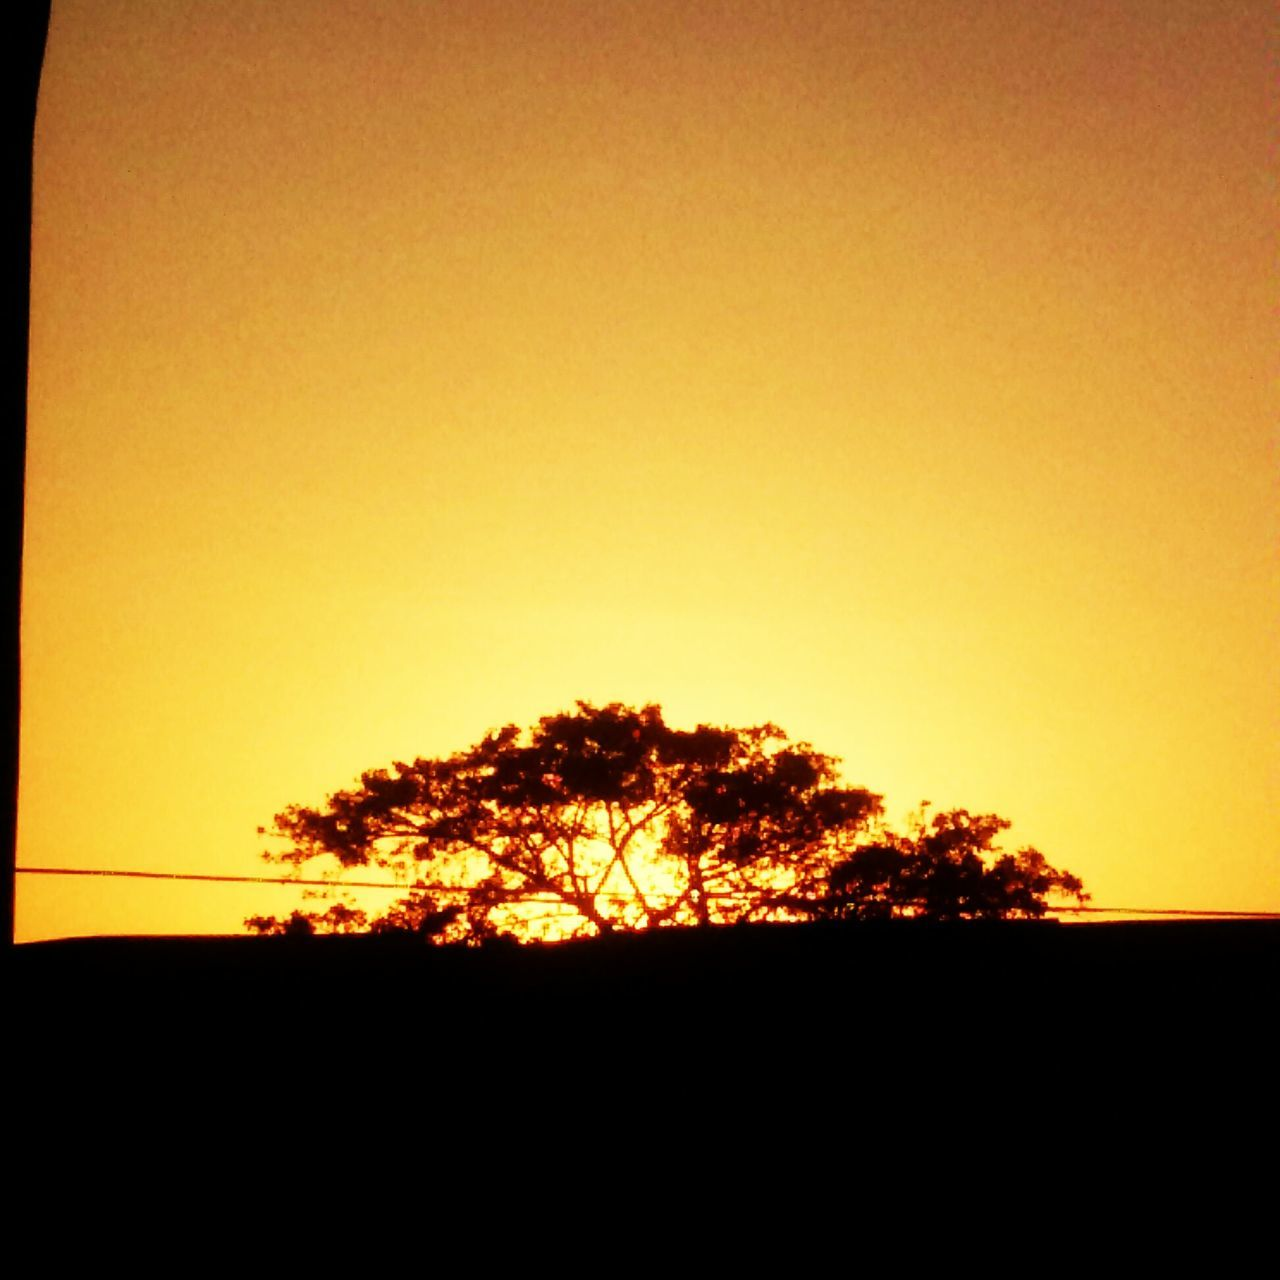 silhouette, sunset, tree, nature, tranquil scene, clear sky, scenics, orange color, tranquility, beauty in nature, no people, landscape, dusk, growth, outdoors, sky, yellow, day